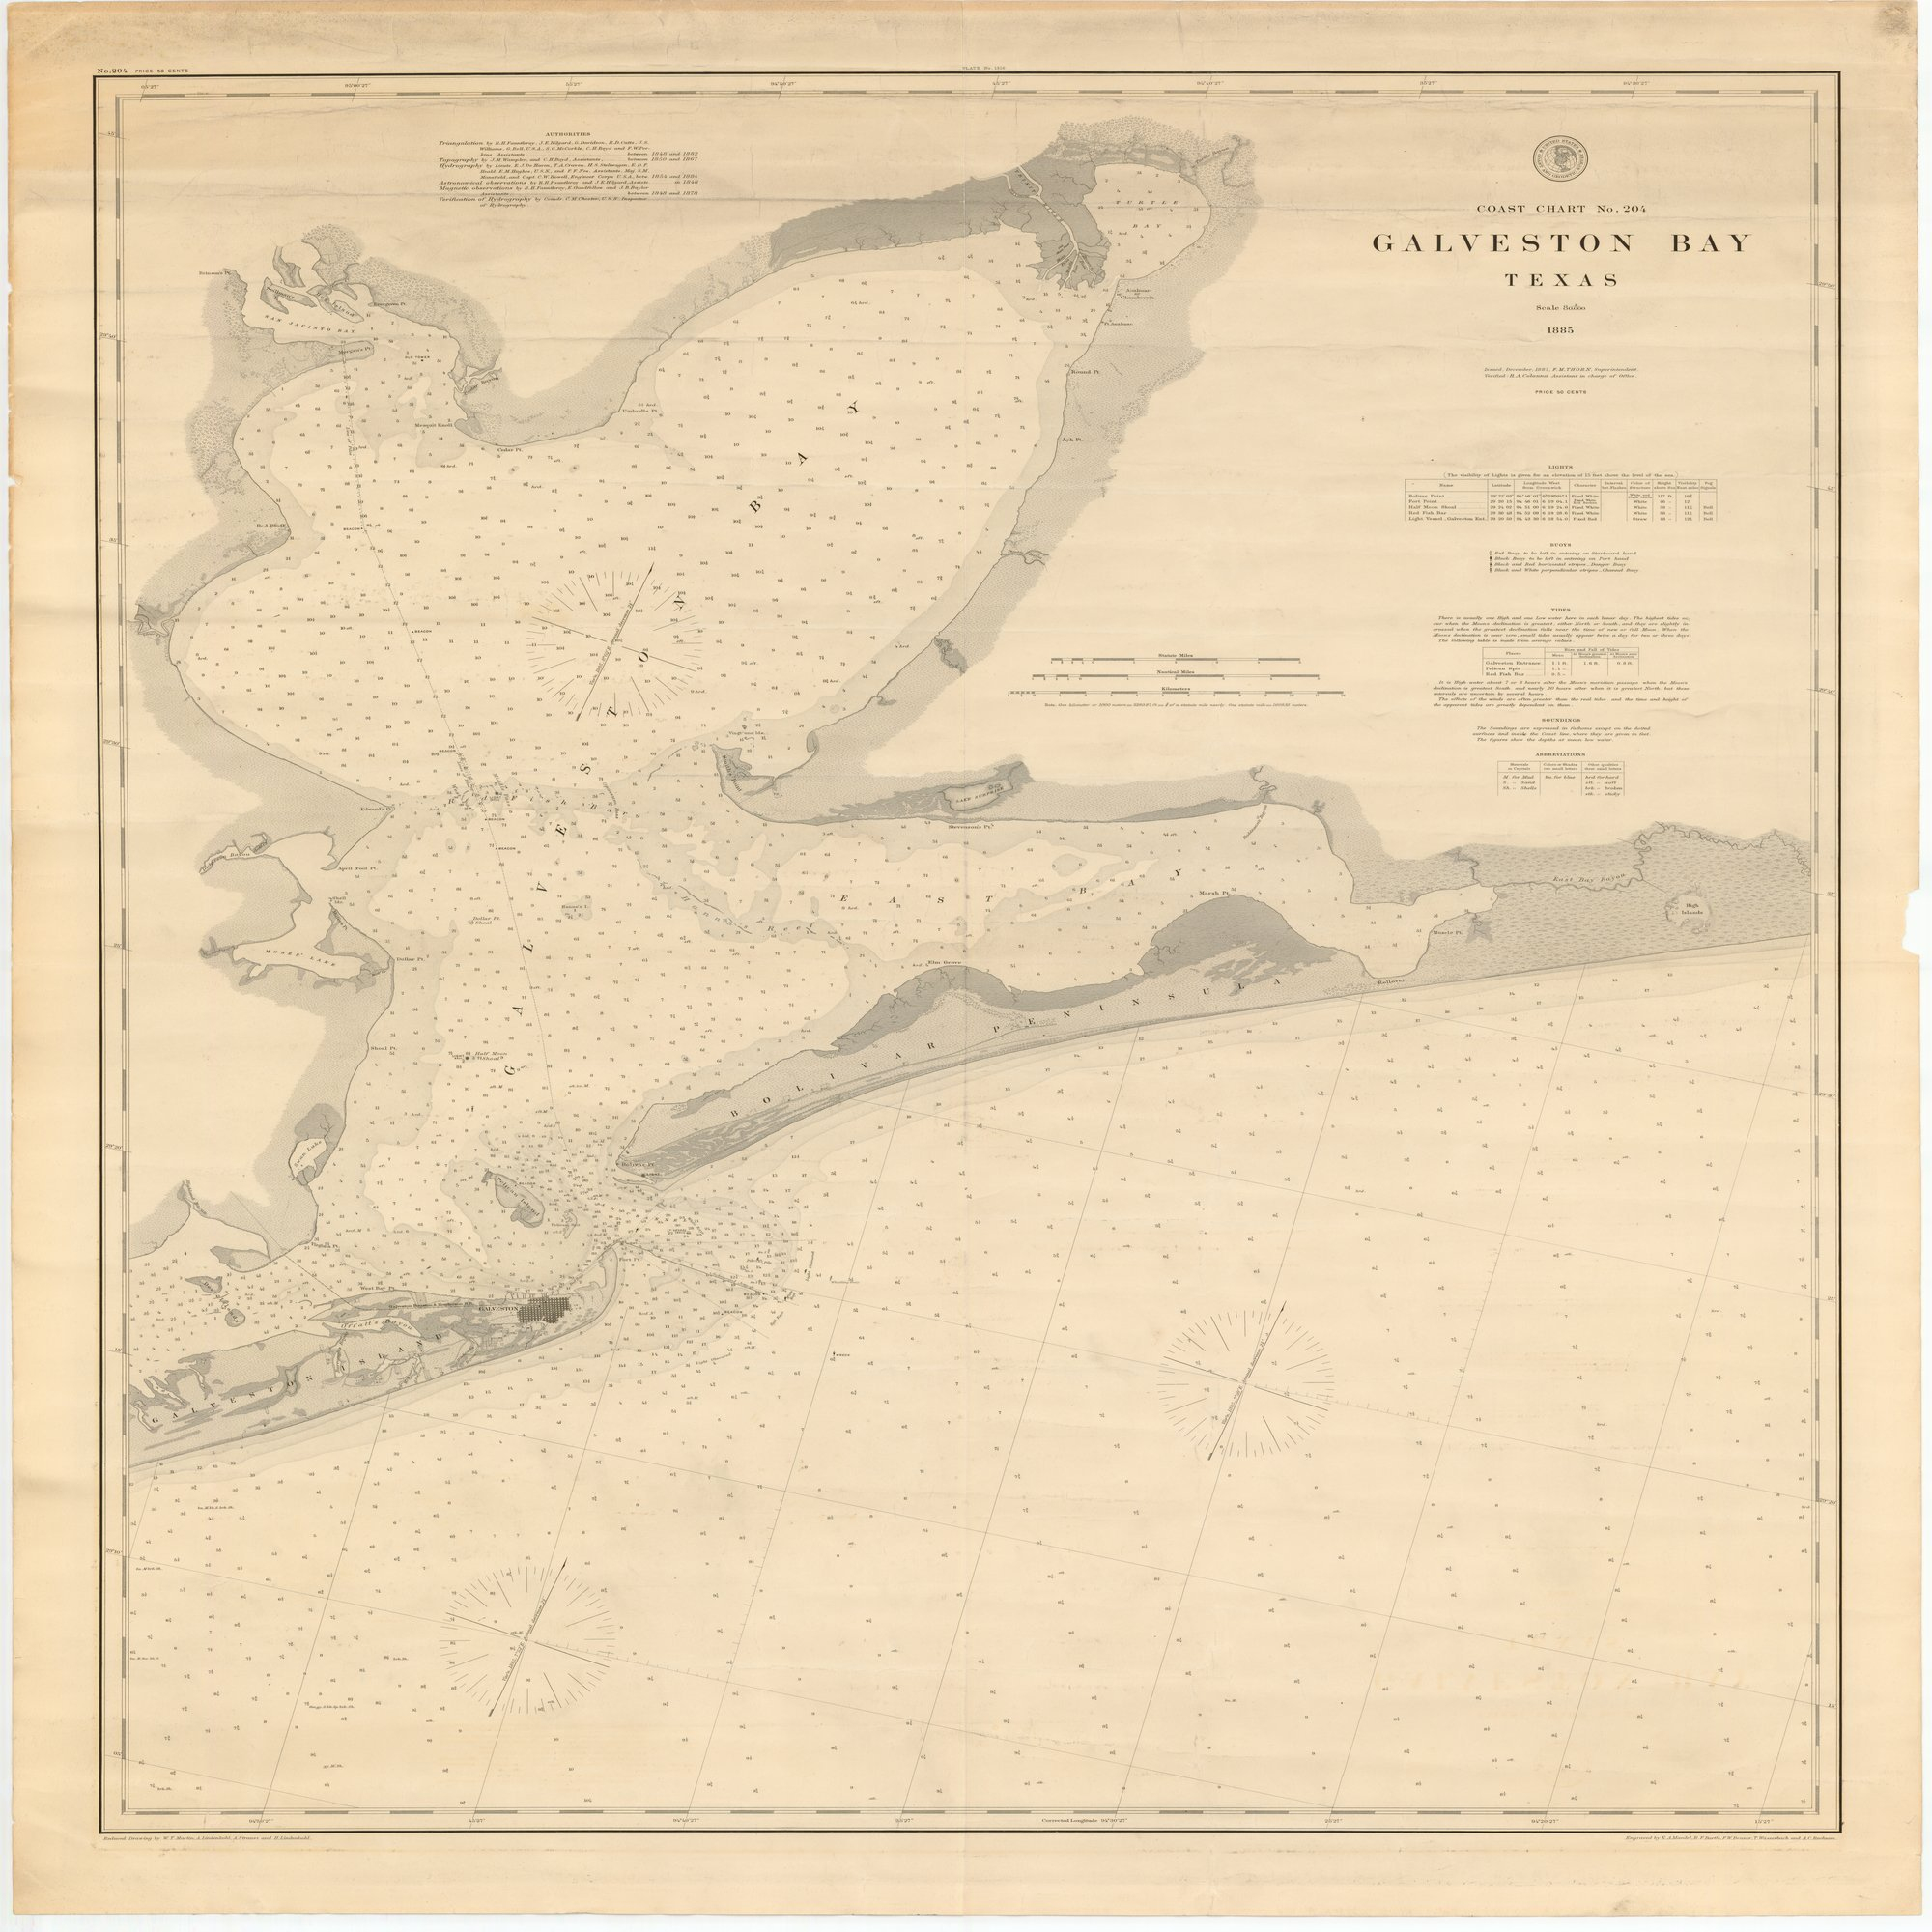 18 X 24 Inch 1885 Texas Old Nautical Map Drawing Chart Of Galveston - Texas Beaches Map